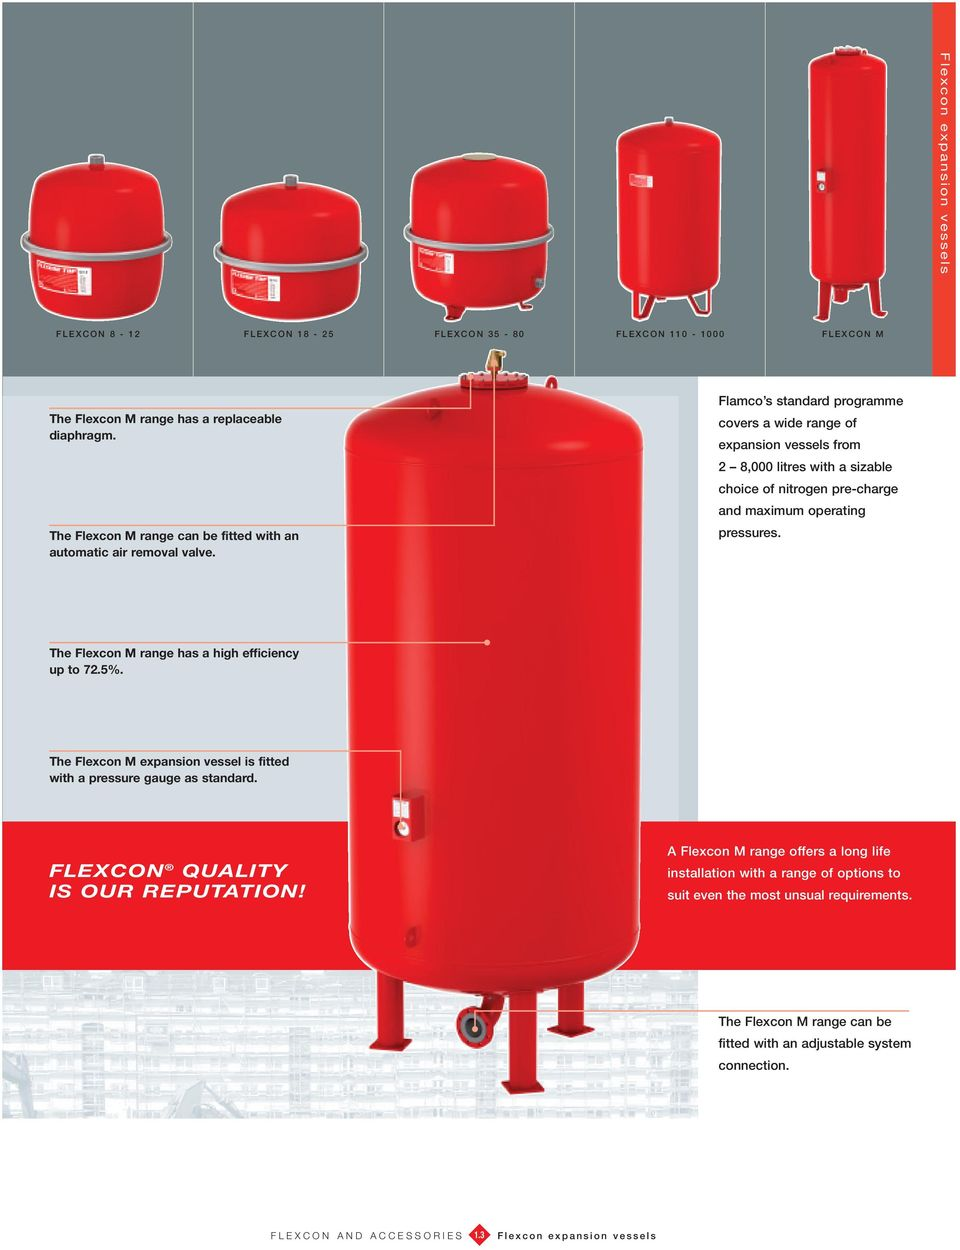 Flamco s standard programme covers a wide range of expansion vessels from 2 8,000 litres with a sizable choice of nitrogen pre-charge and maximum operating pressures.